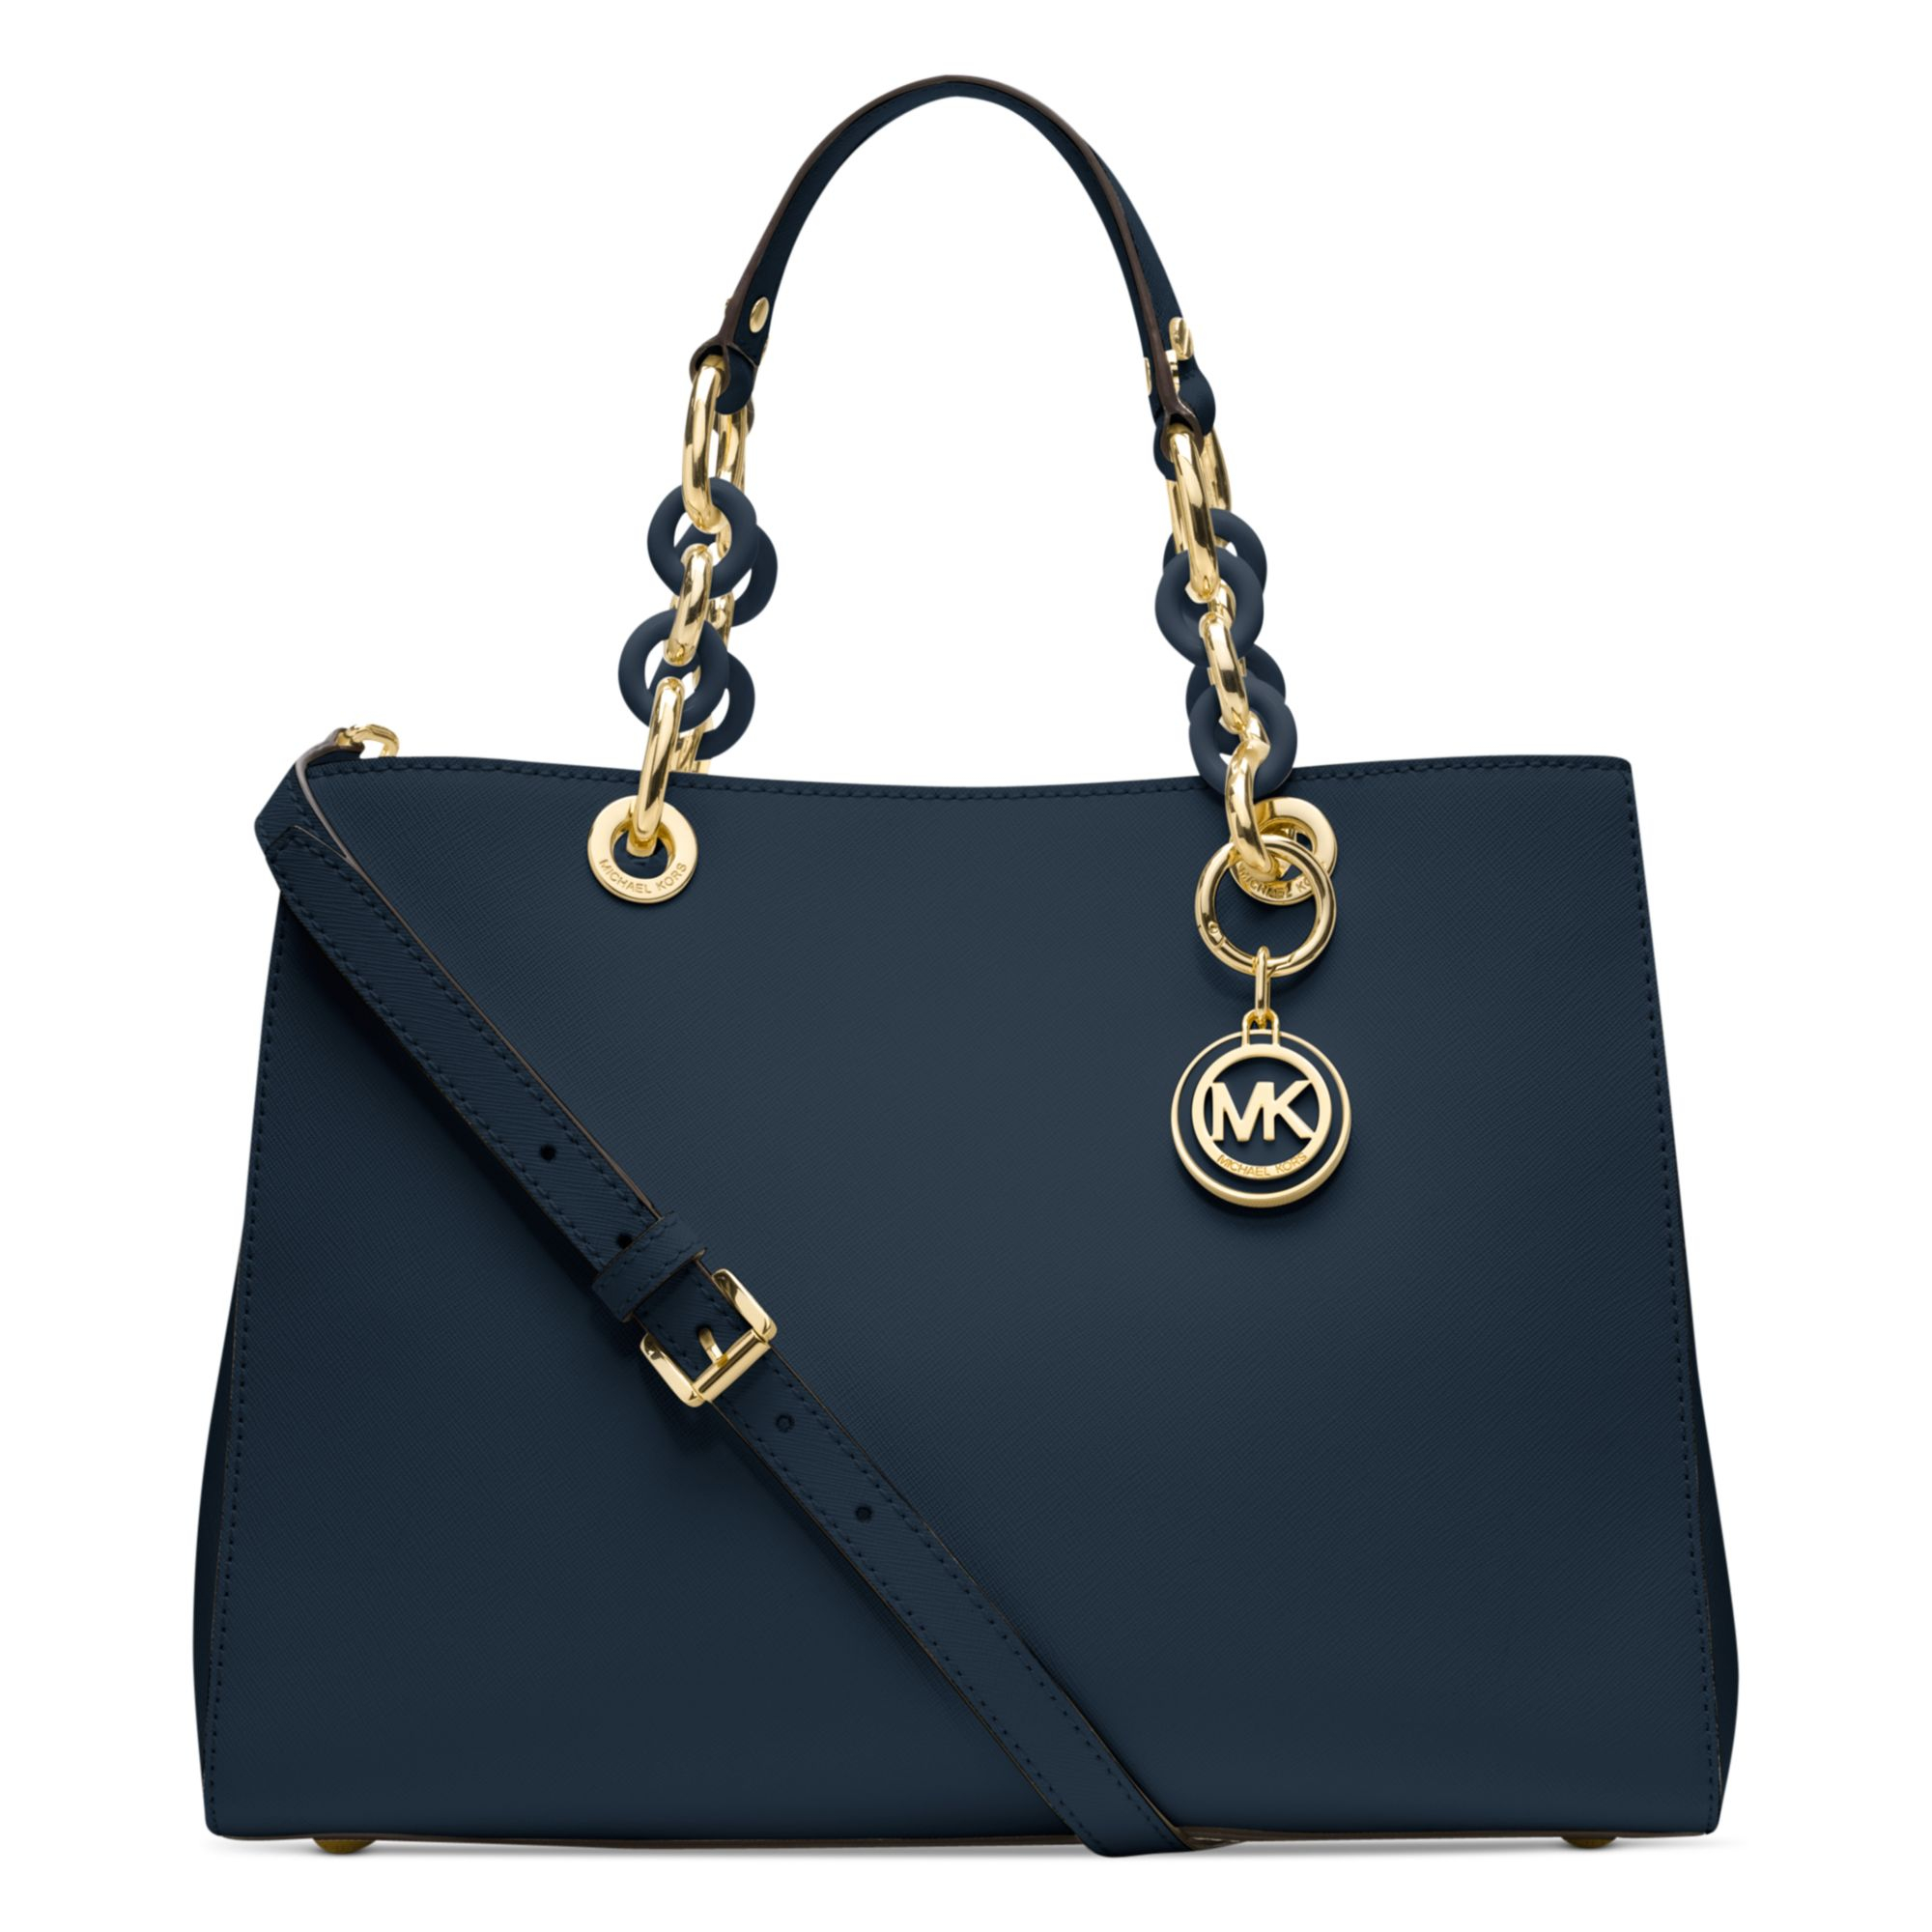 michael kors cynthia medium satchel in blue lyst. Black Bedroom Furniture Sets. Home Design Ideas